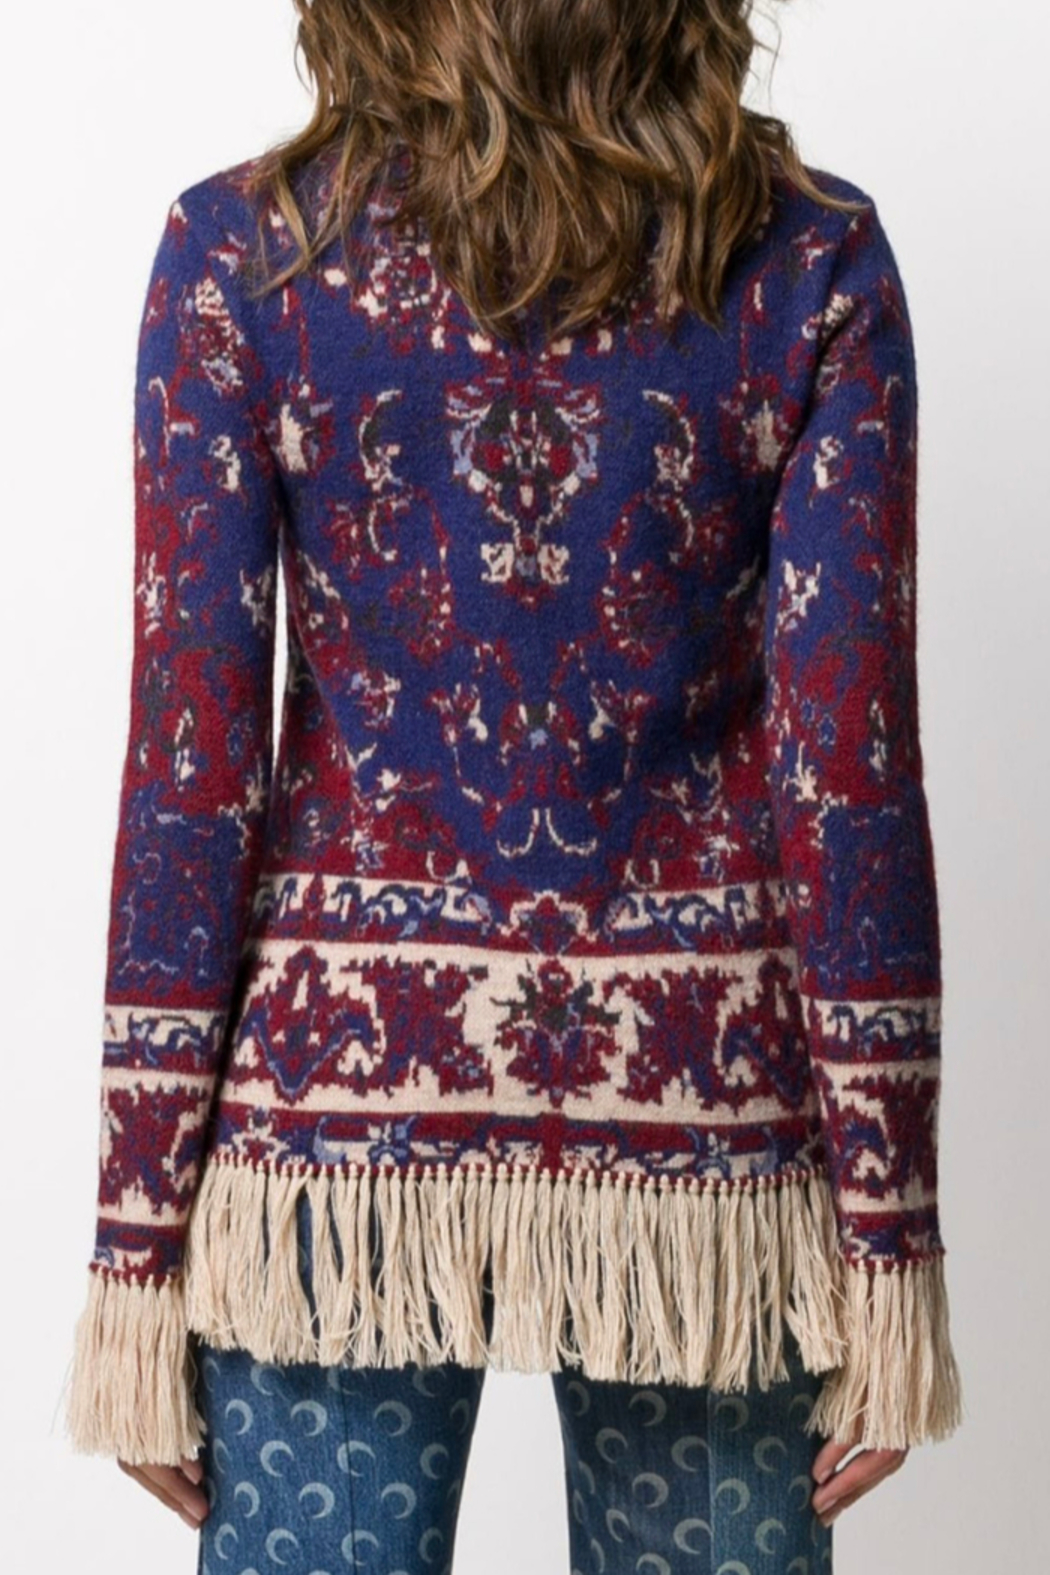 Paco Rabanne KNIT PULLOVER WITH FRINGE - Front Full Image